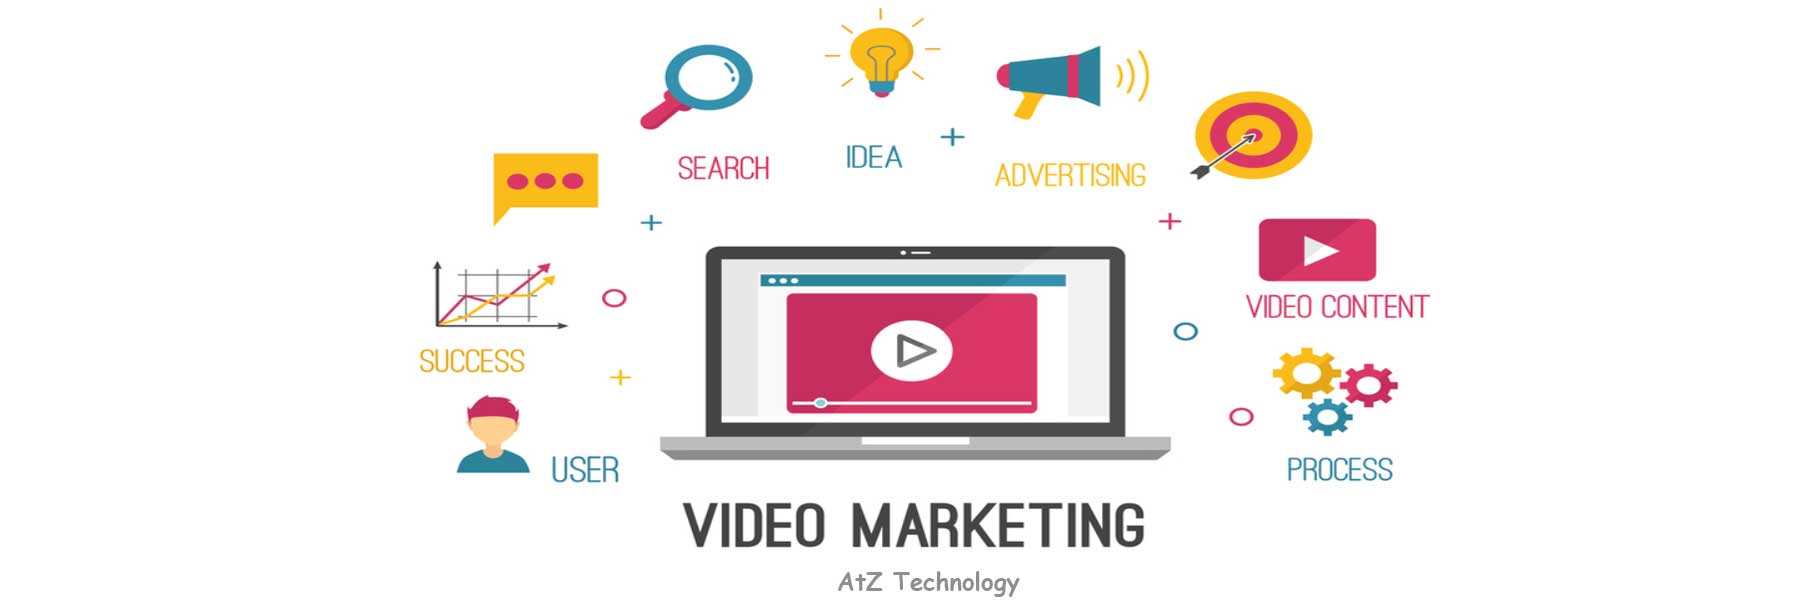 Video Marketing: Everything You Need to Know